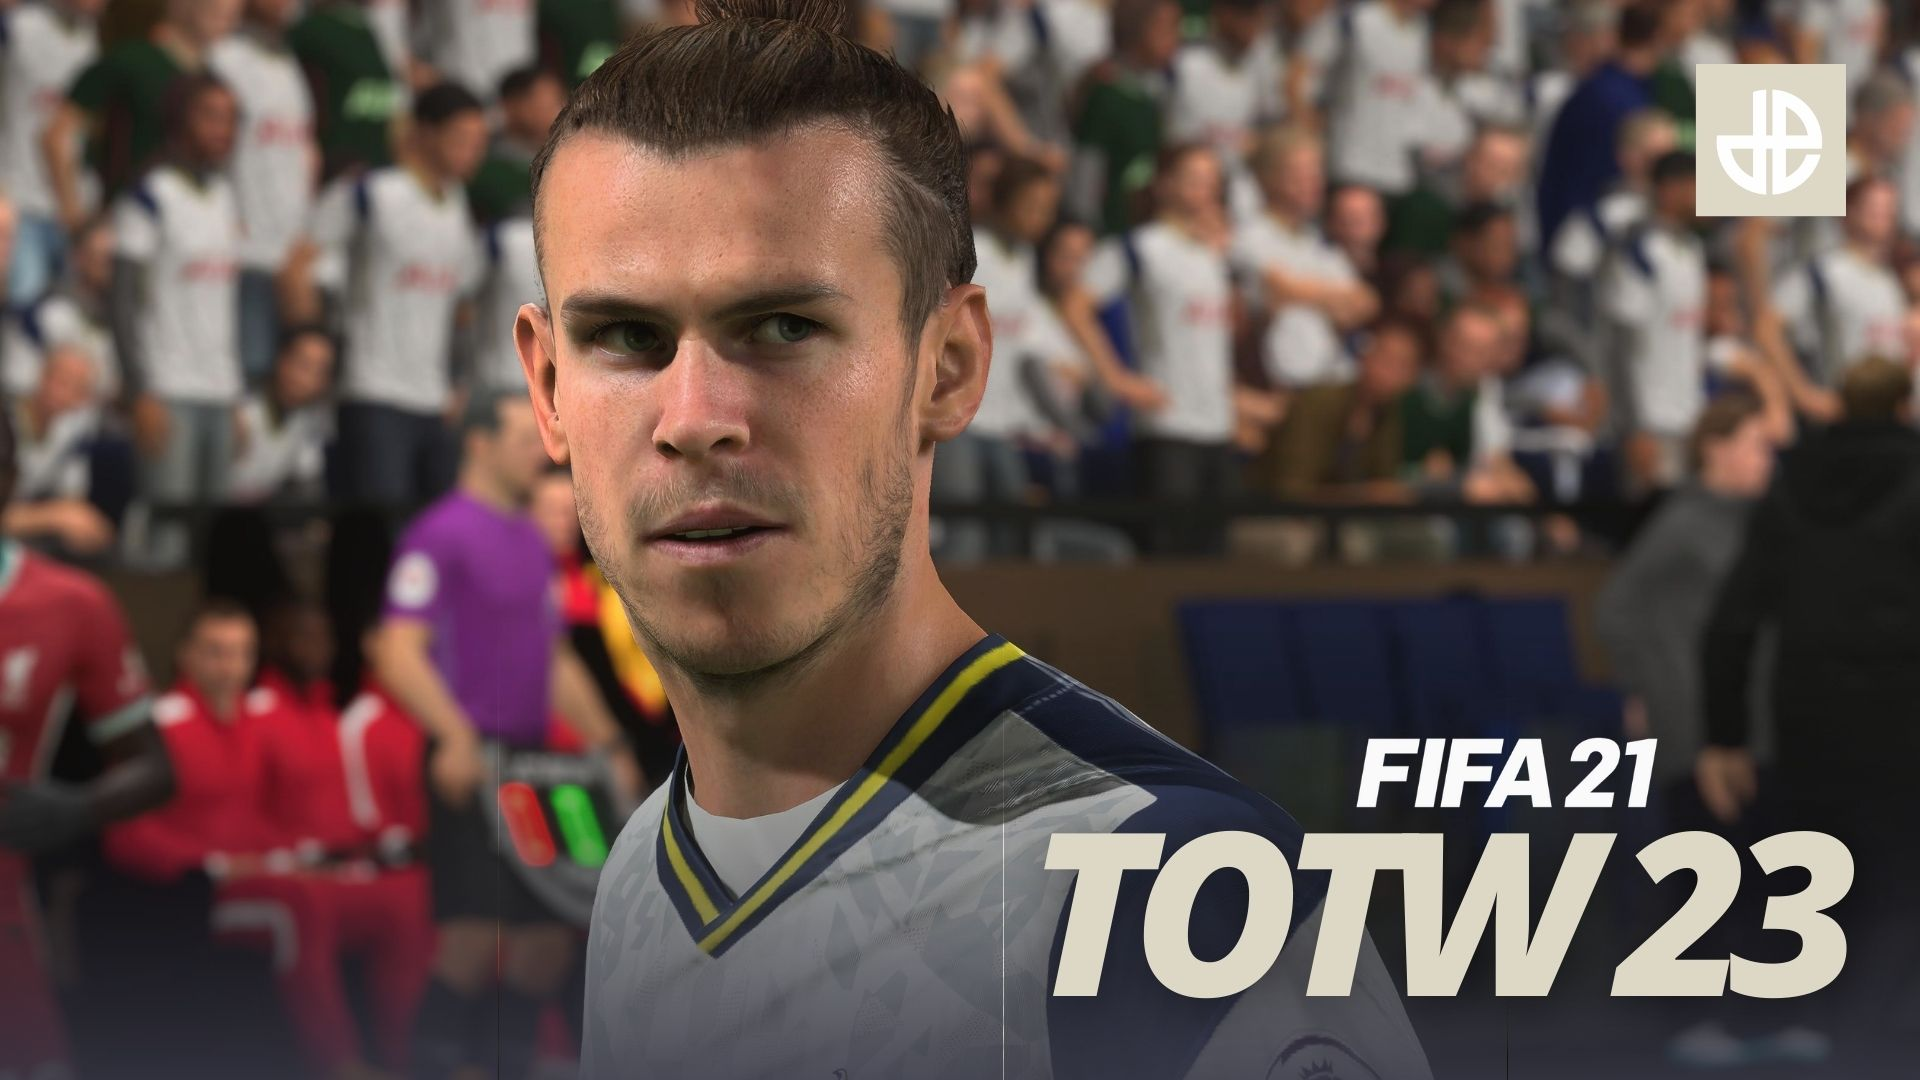 Gareth Bale Tottenham stands over FIFA 21 TOTW 23 Team of the Week.